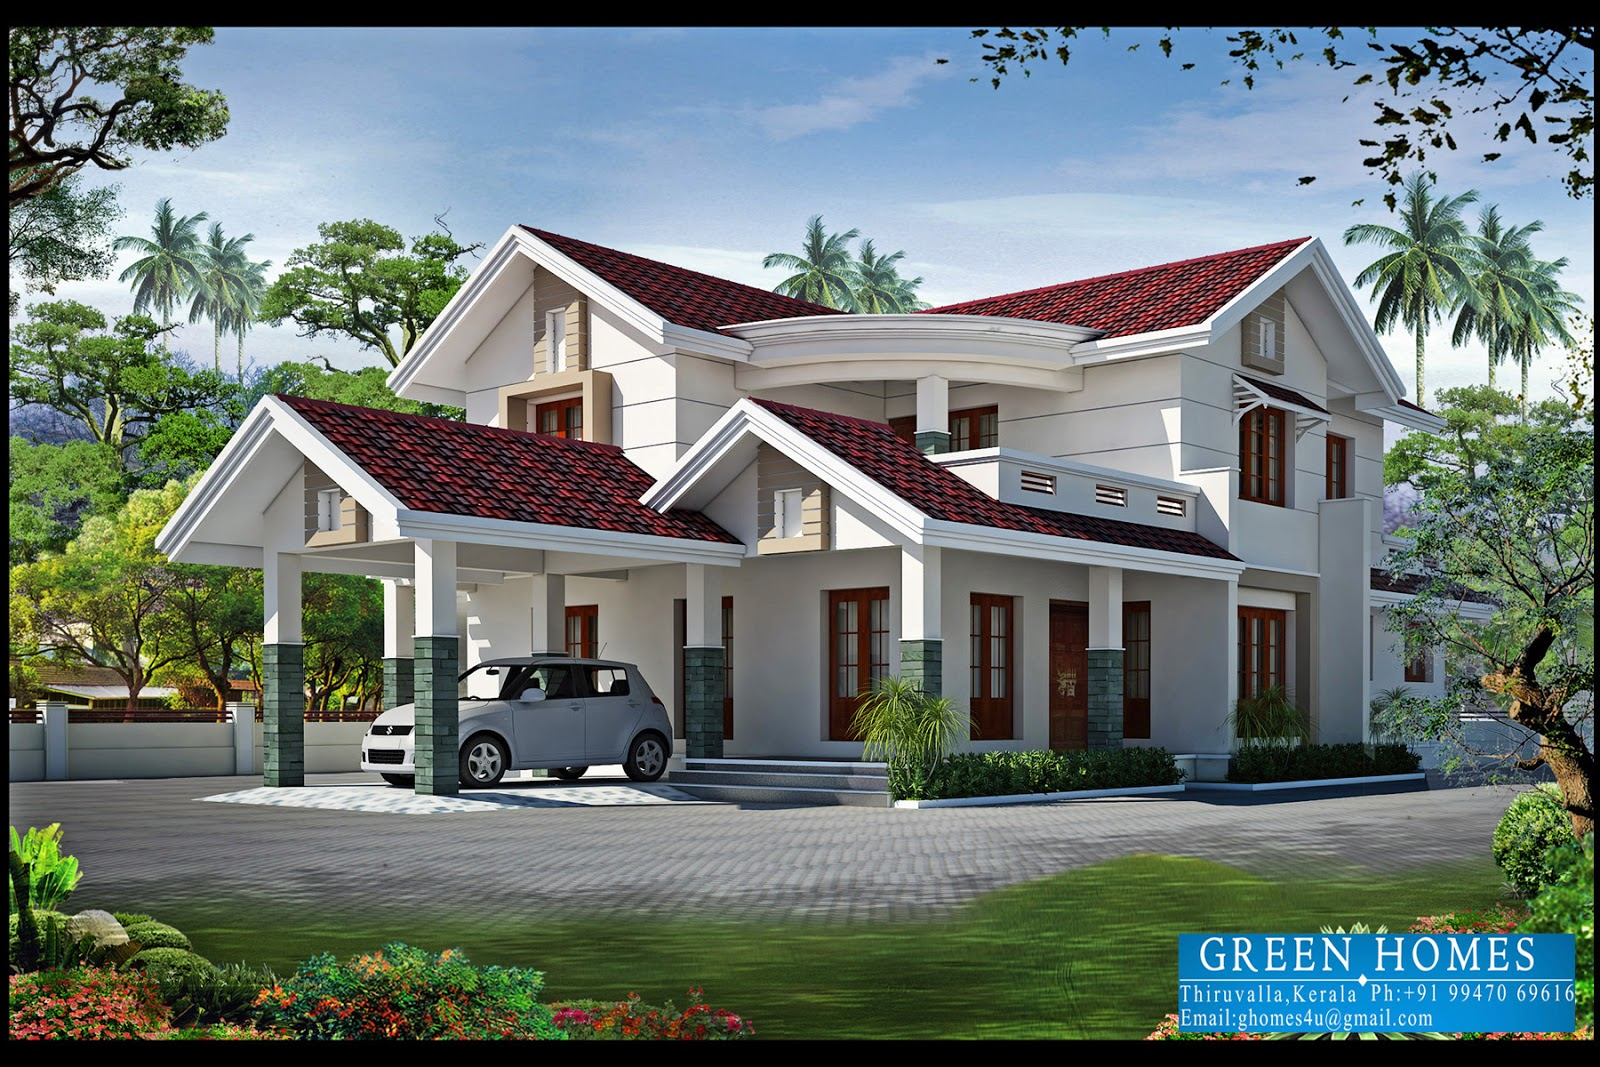 Green homes 4bhk kerala home design 2550 for Kerala new model house plan